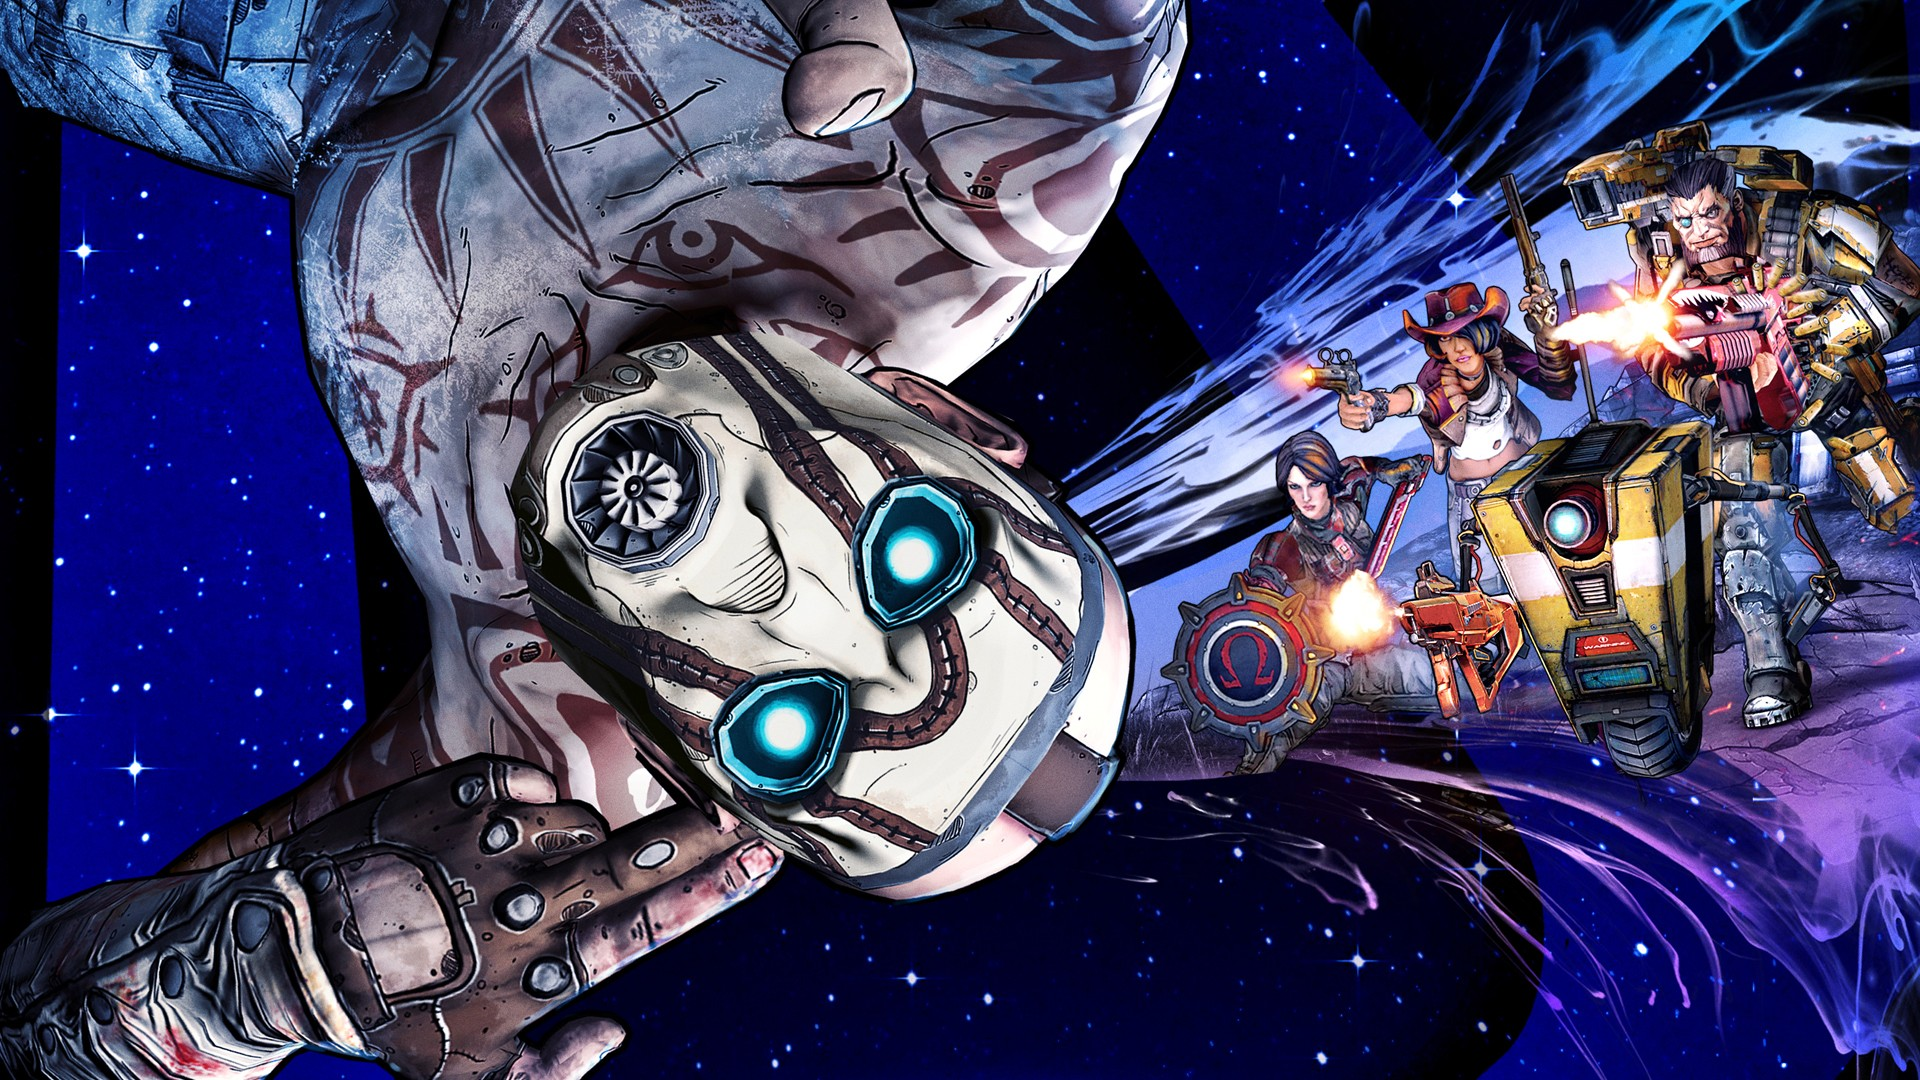 Borderlands 3 Wallpapers Free Pictures On Greepx